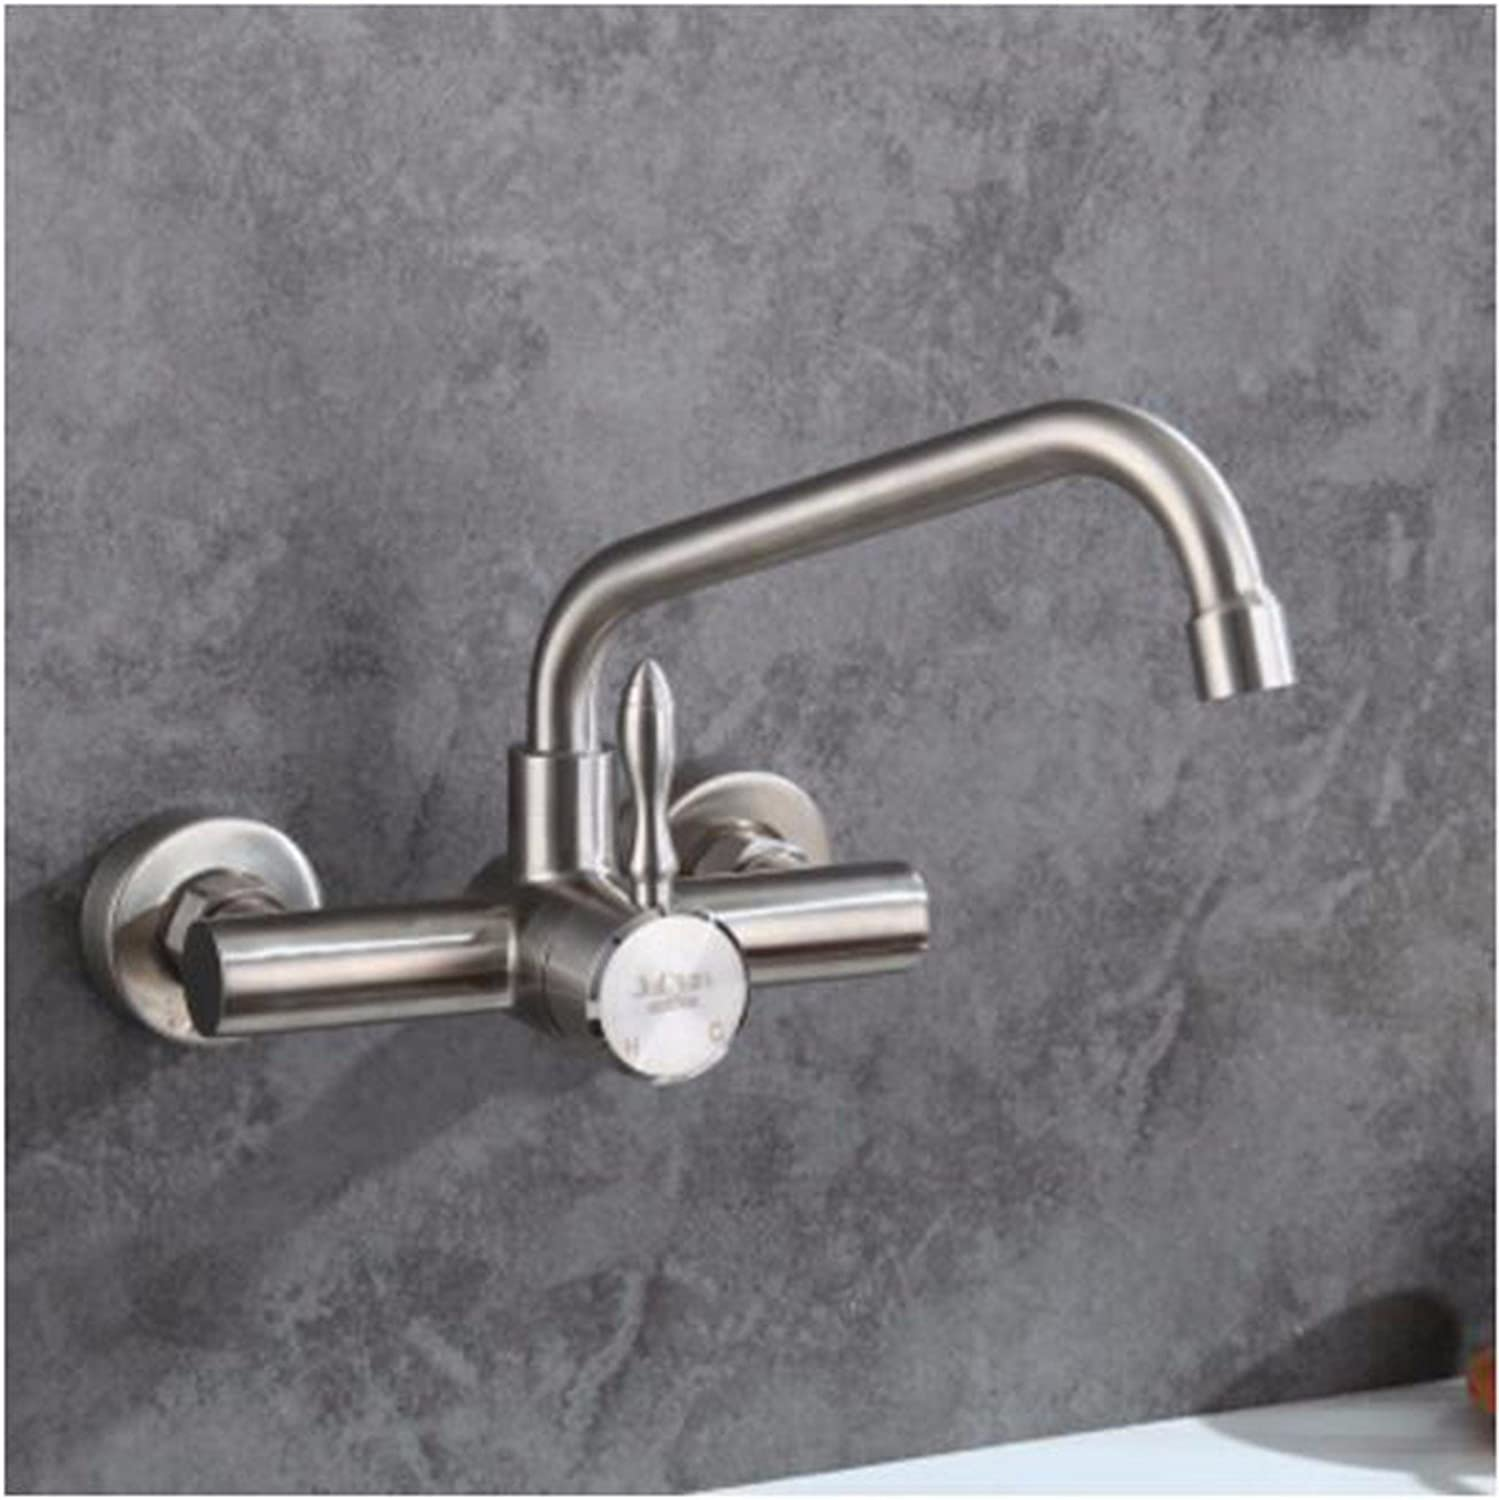 XJTNLB 304 stainless steel wall type hot and cold water faucet sprinkler two function kitchen kitchen pots double sink balcony laundry pool,A